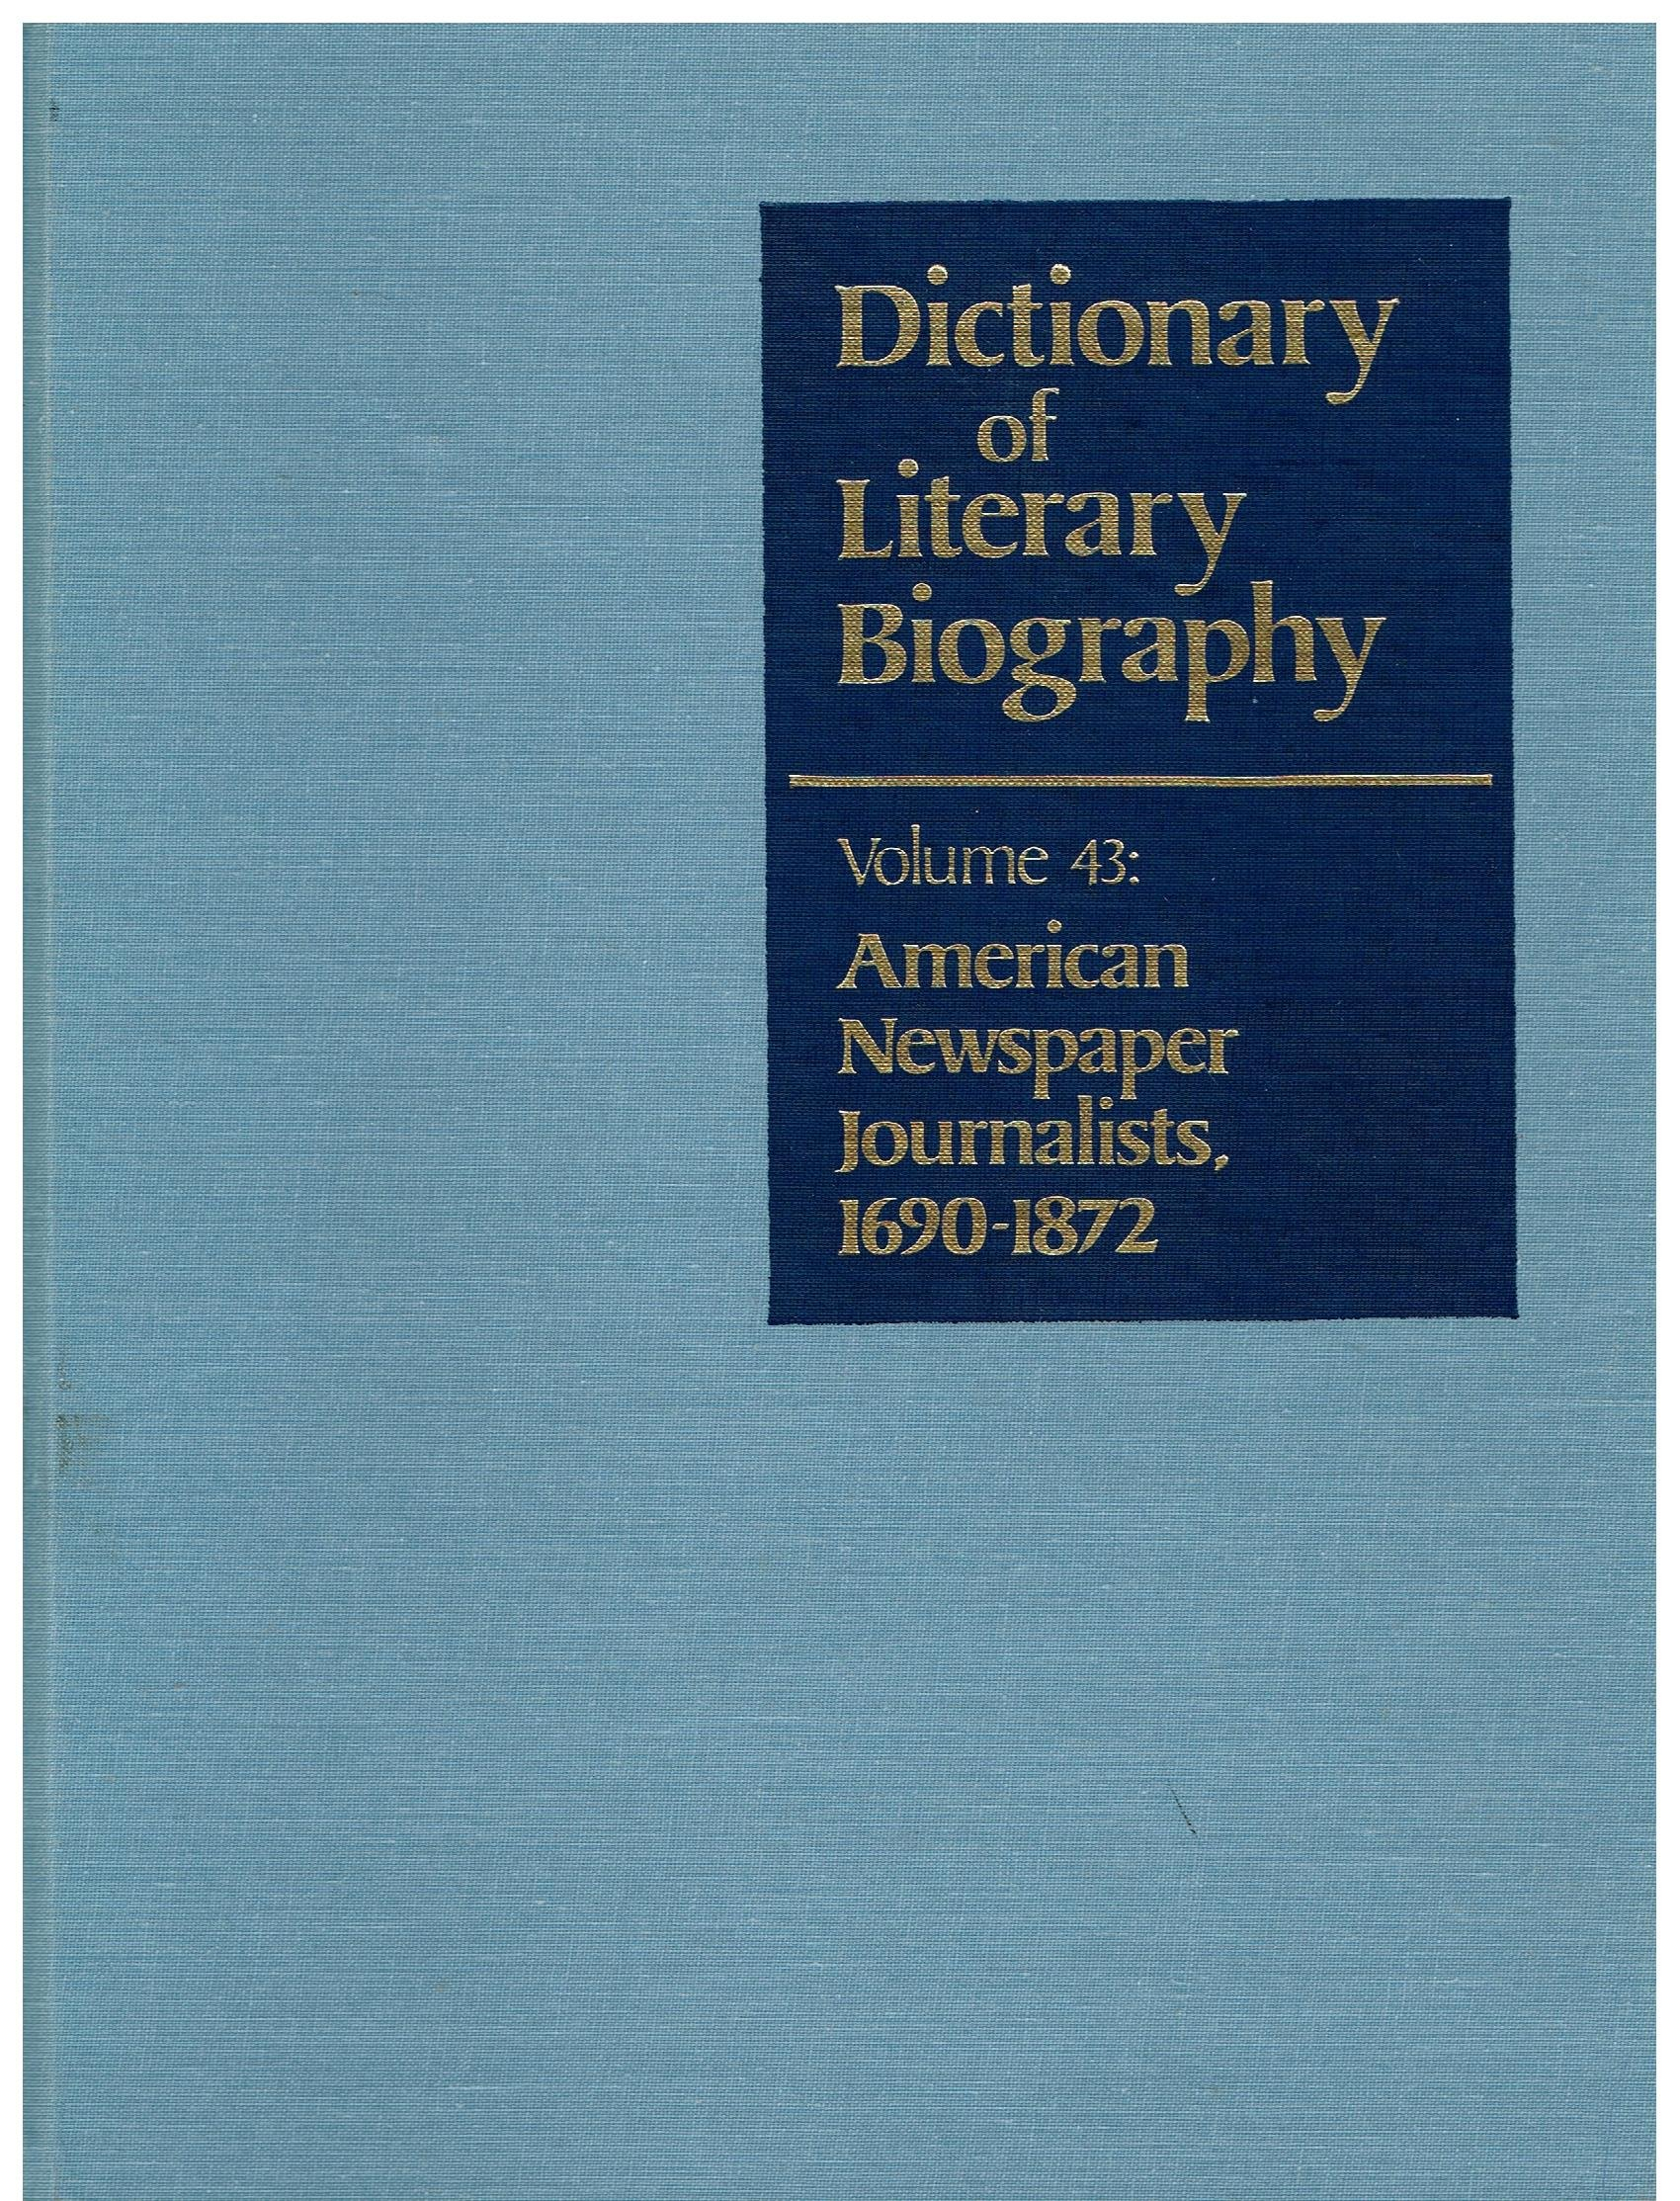 Dictionary of Literary Biography: American Newspaper Journalists 1690-1872